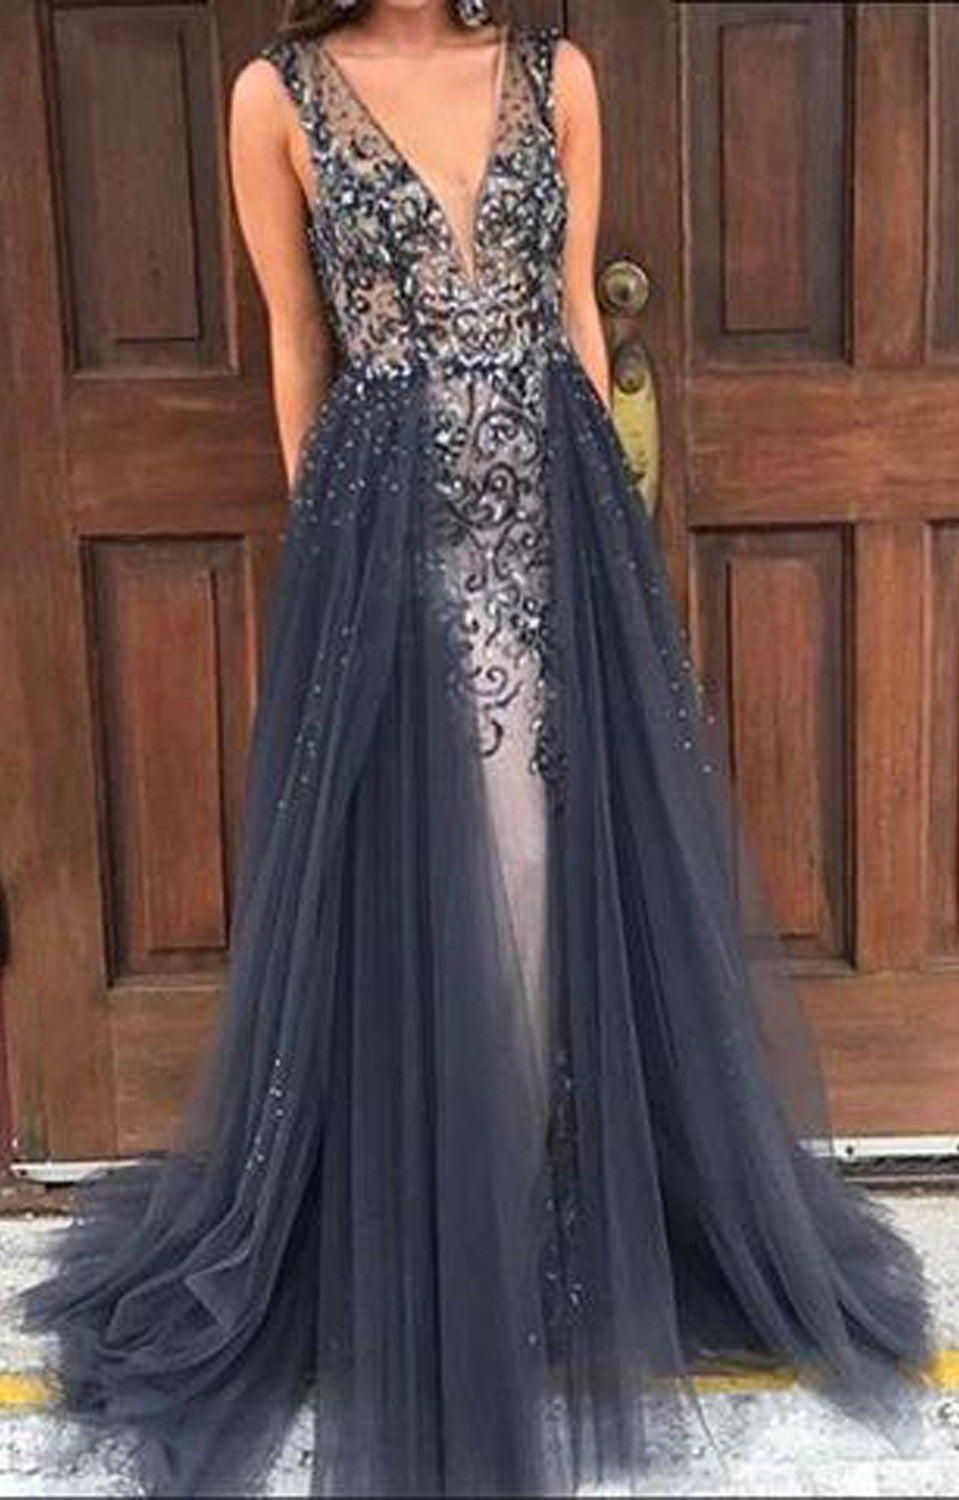 Cute Sparkly Black Long Prom Homecoming Graduation A Line Dress Outfit Ideas - MyBodiArt.com